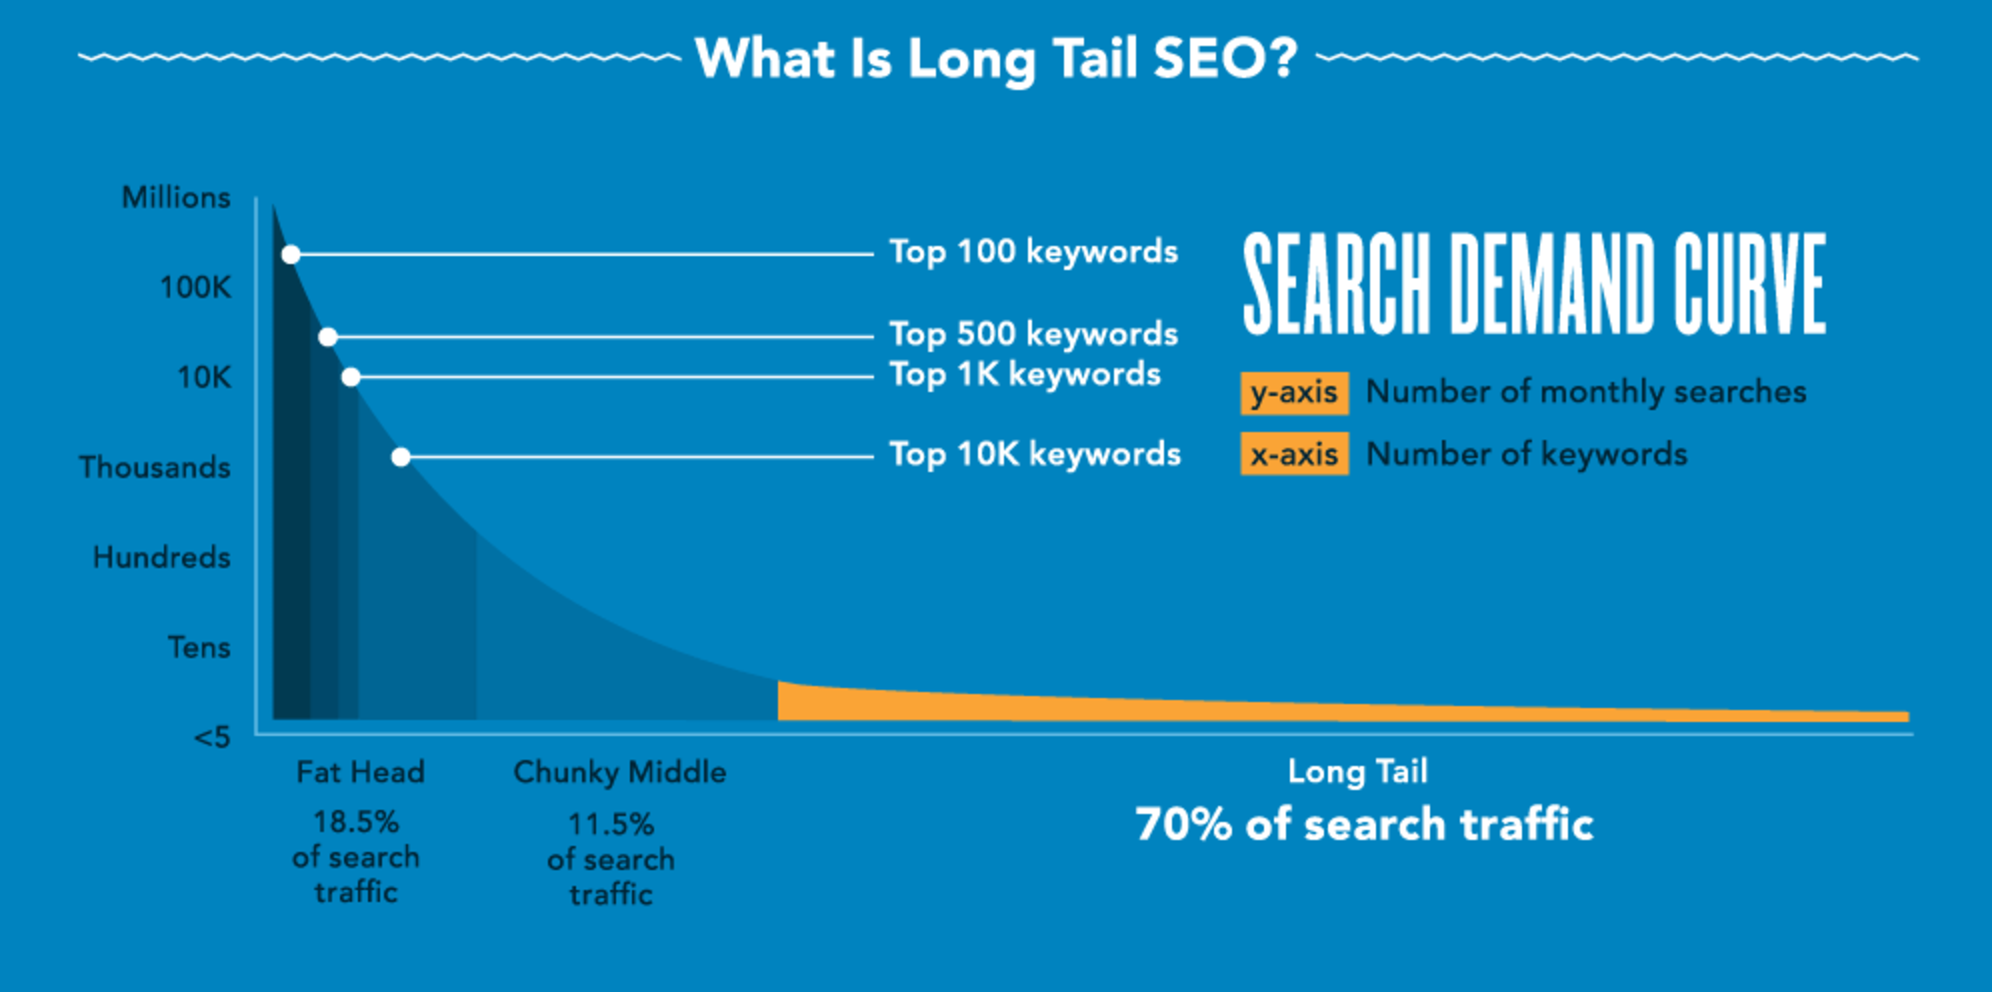 What is long tail SEO